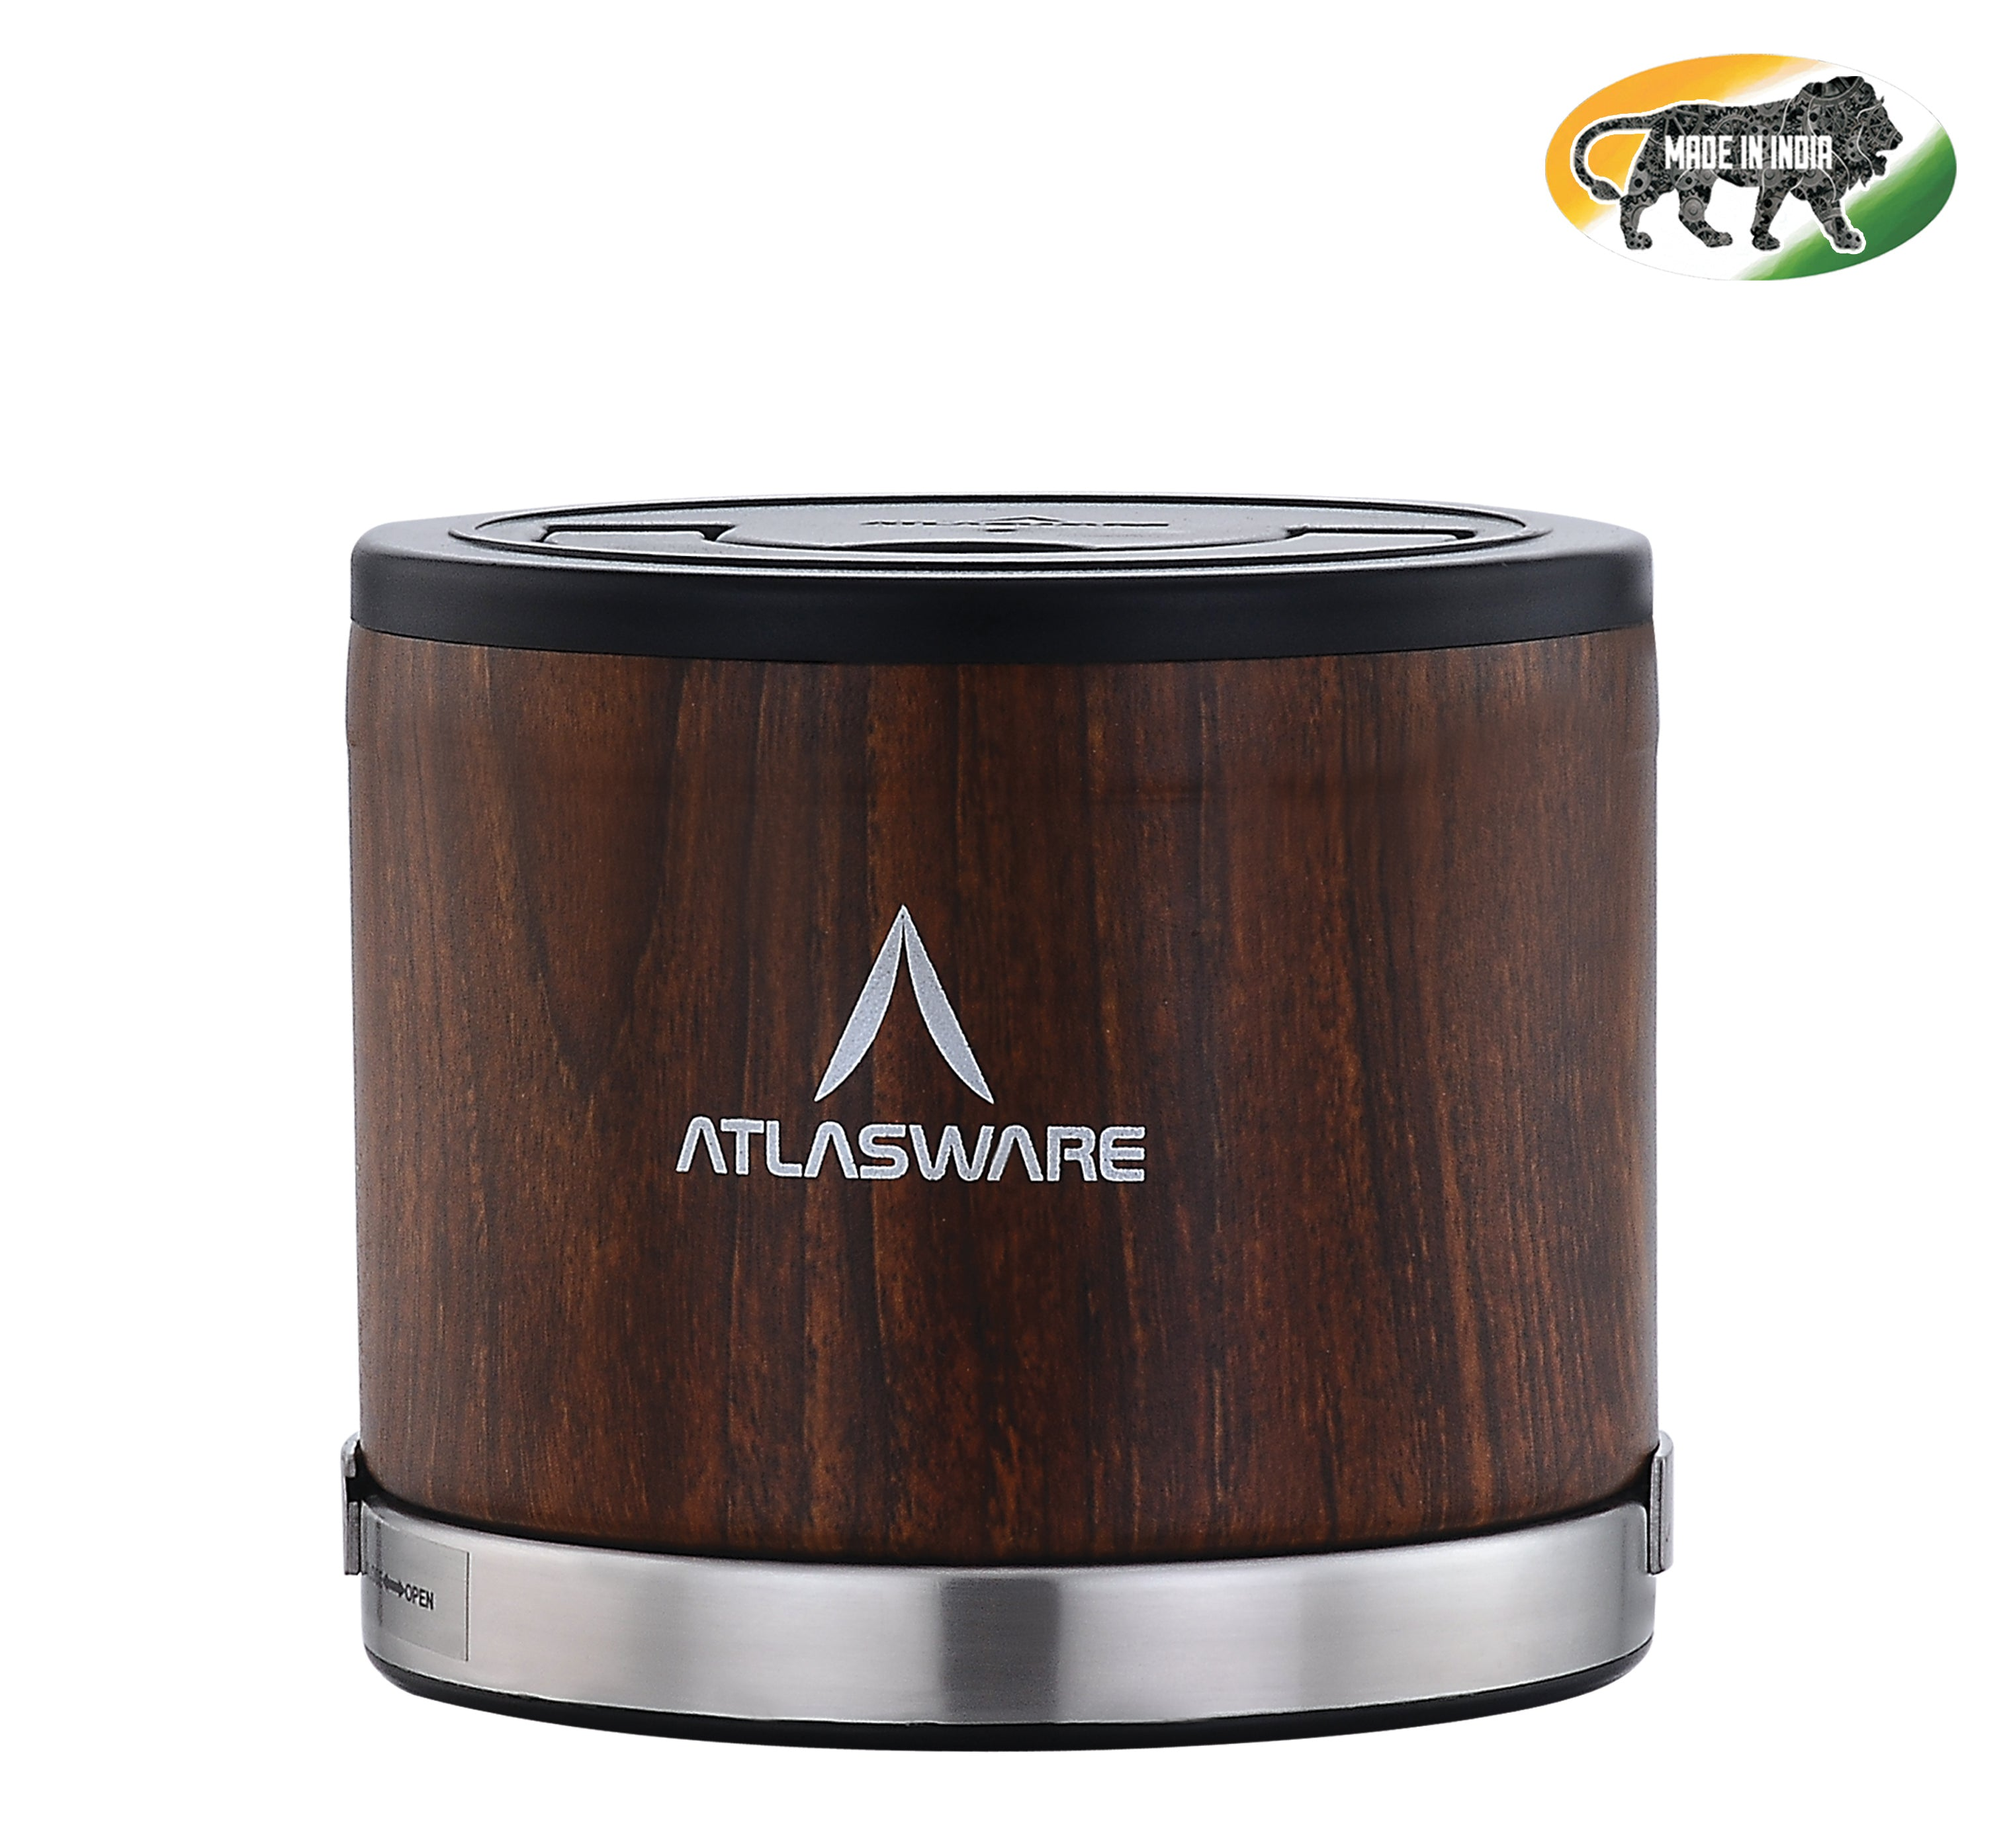 Atlasware Stainless Steel Wood Finish Insulated Lunch box 475ml (1 Container) Tiffin Box